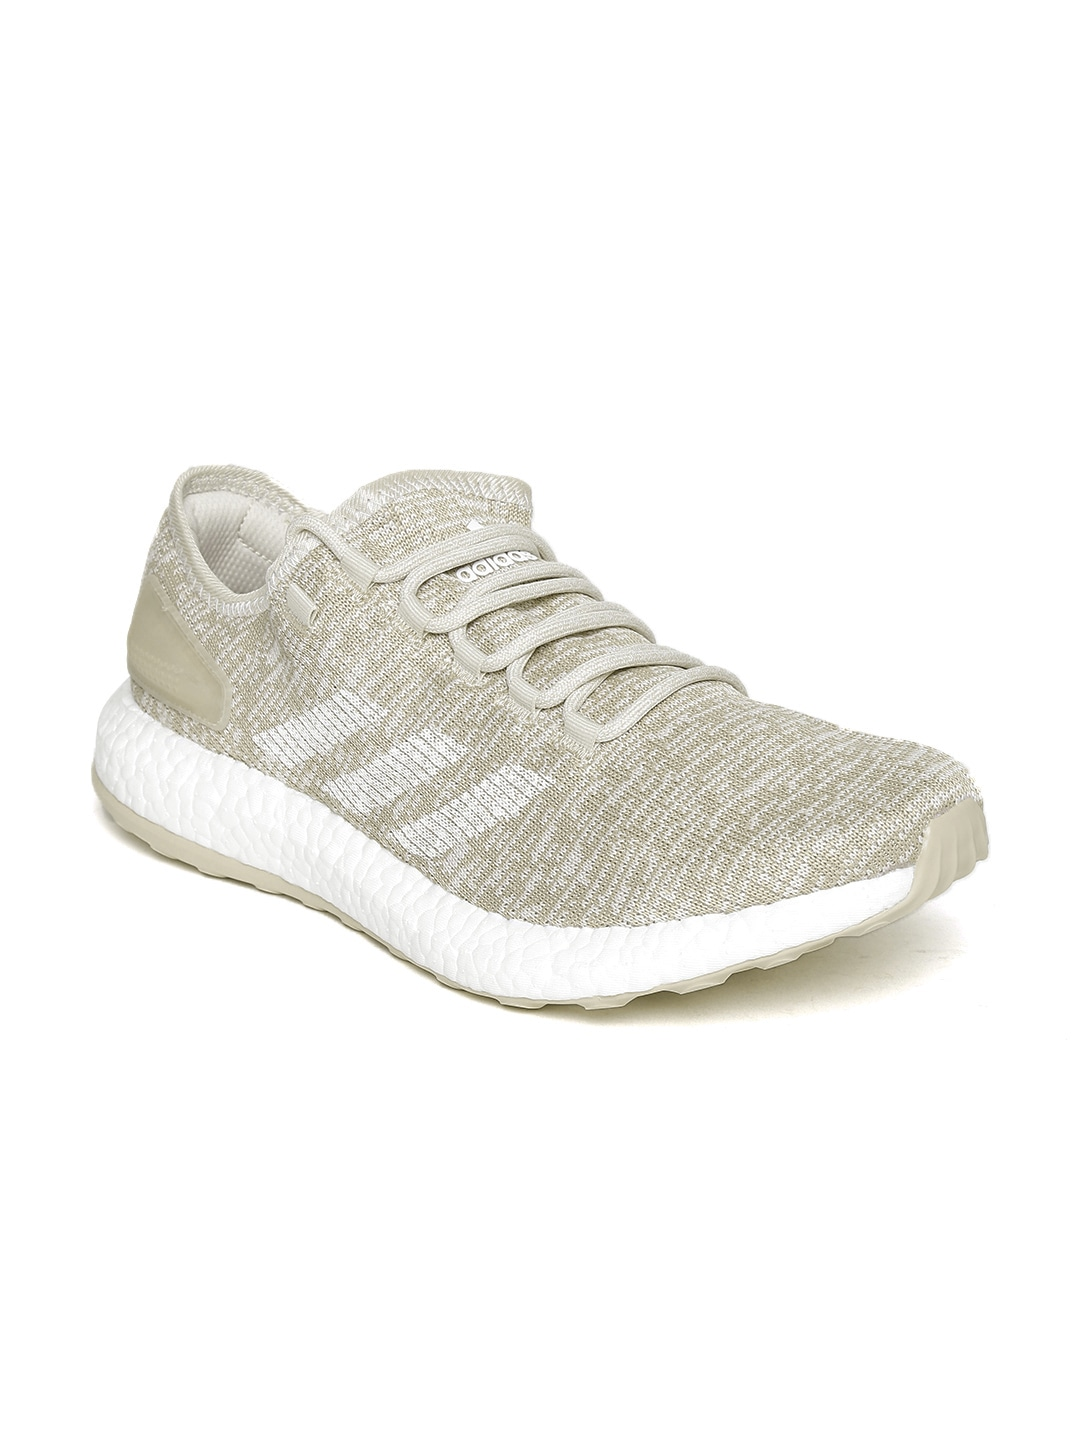 feeedc9410b58 ... low price adidas men beige pure boost clima running shoes price in india  fd14d 66070 coupon ...